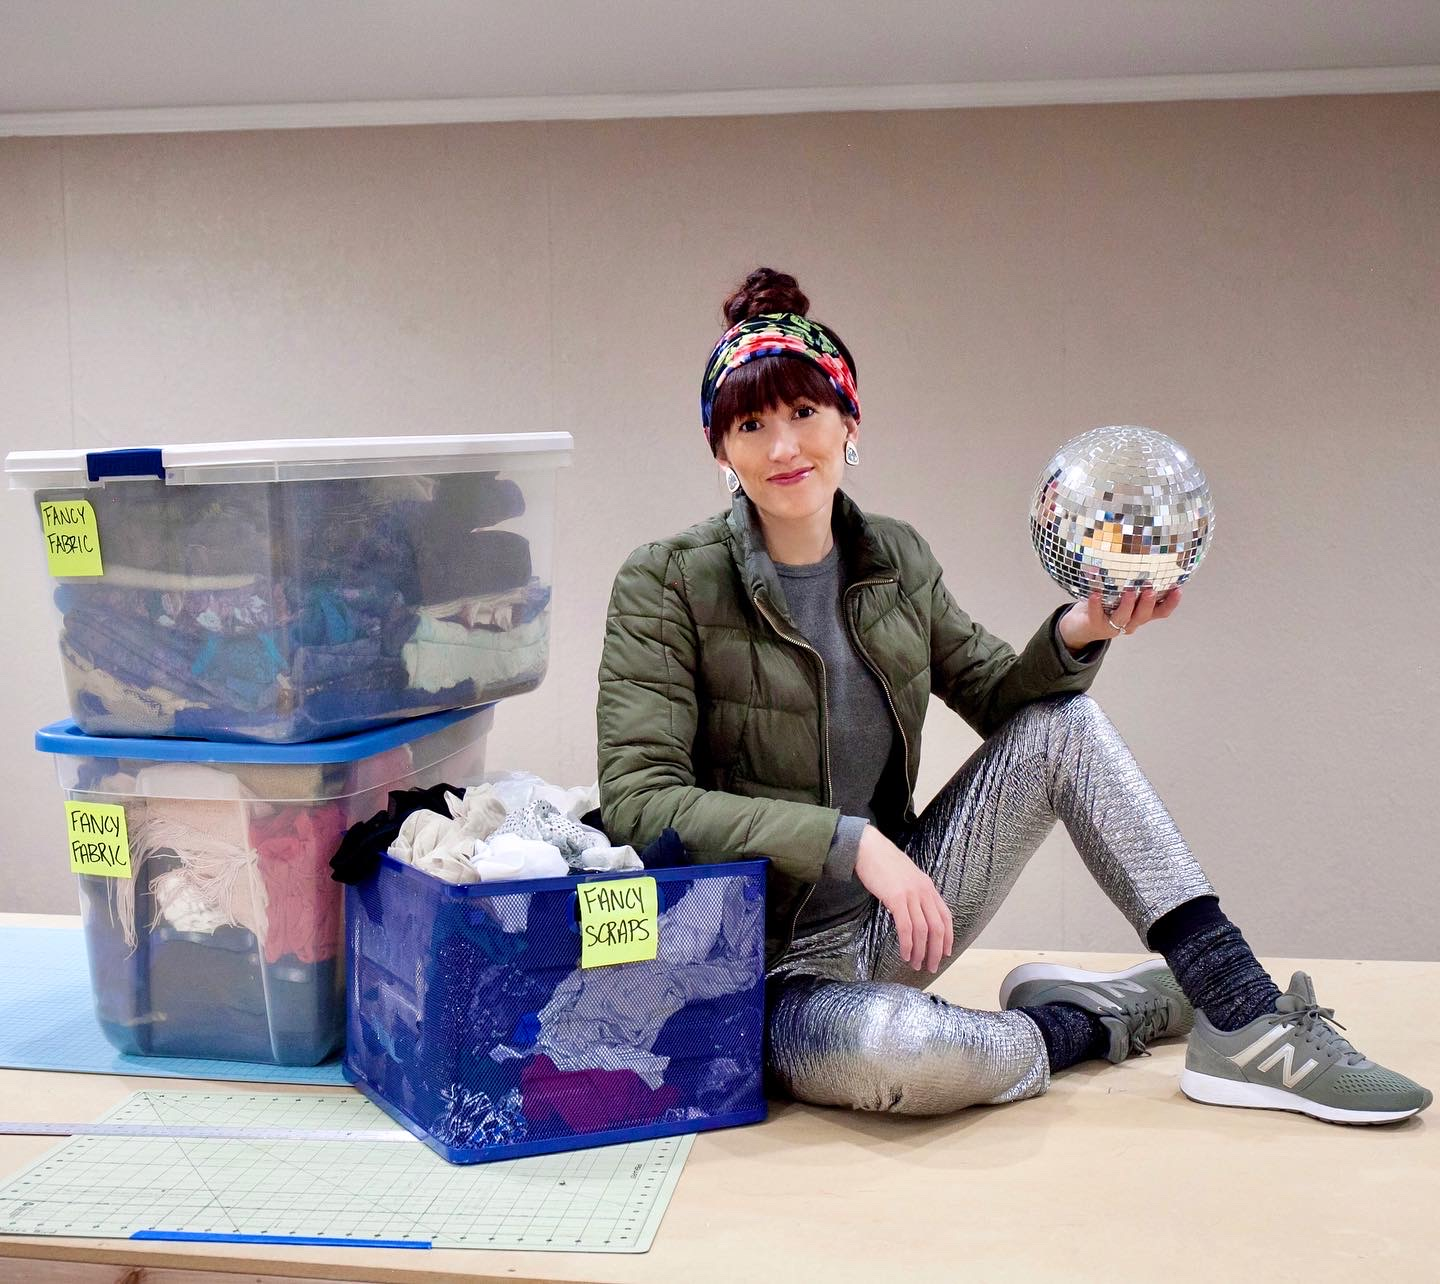 Alyssa Bird wearing Regenerous Designs accessories sitting on a table with boxes of fabric and holding a disco ball